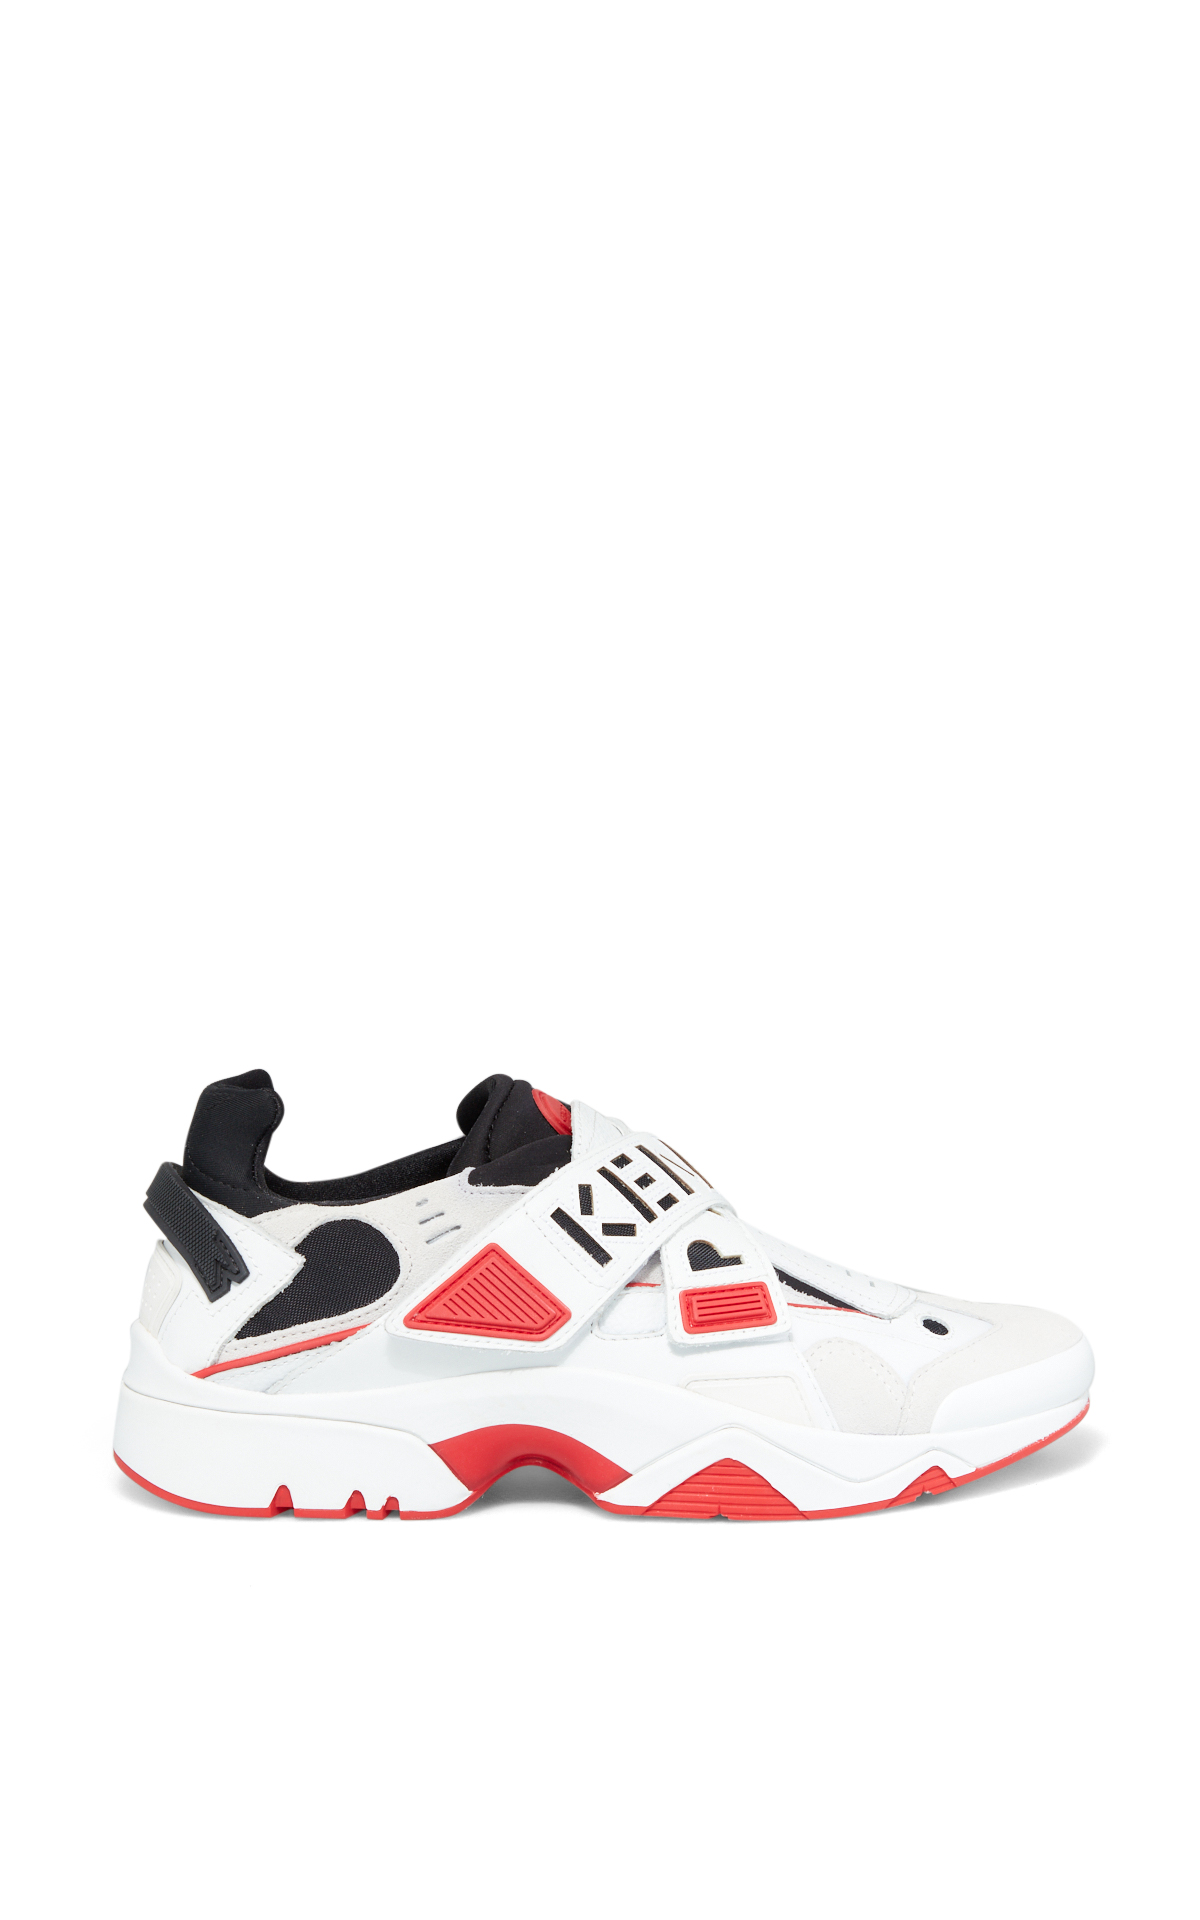 Kenzo Men's red sneakers